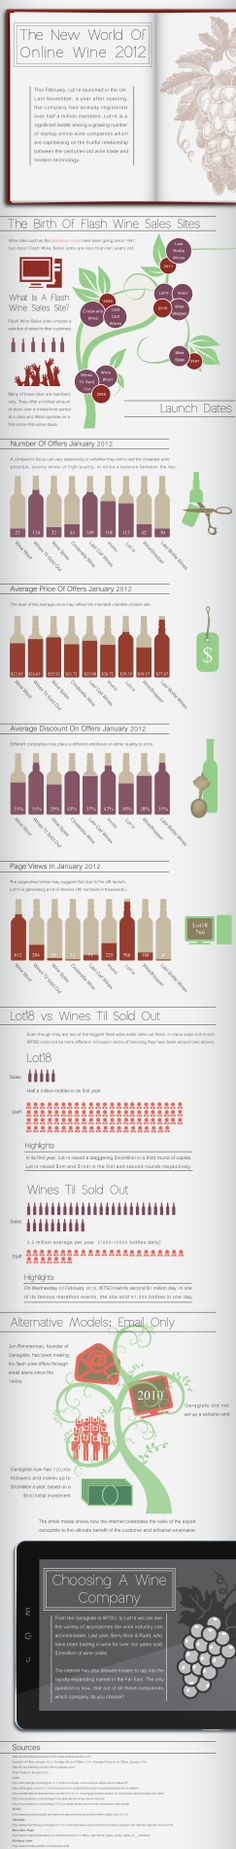 infographic about wine startups - featured in Forbes.com